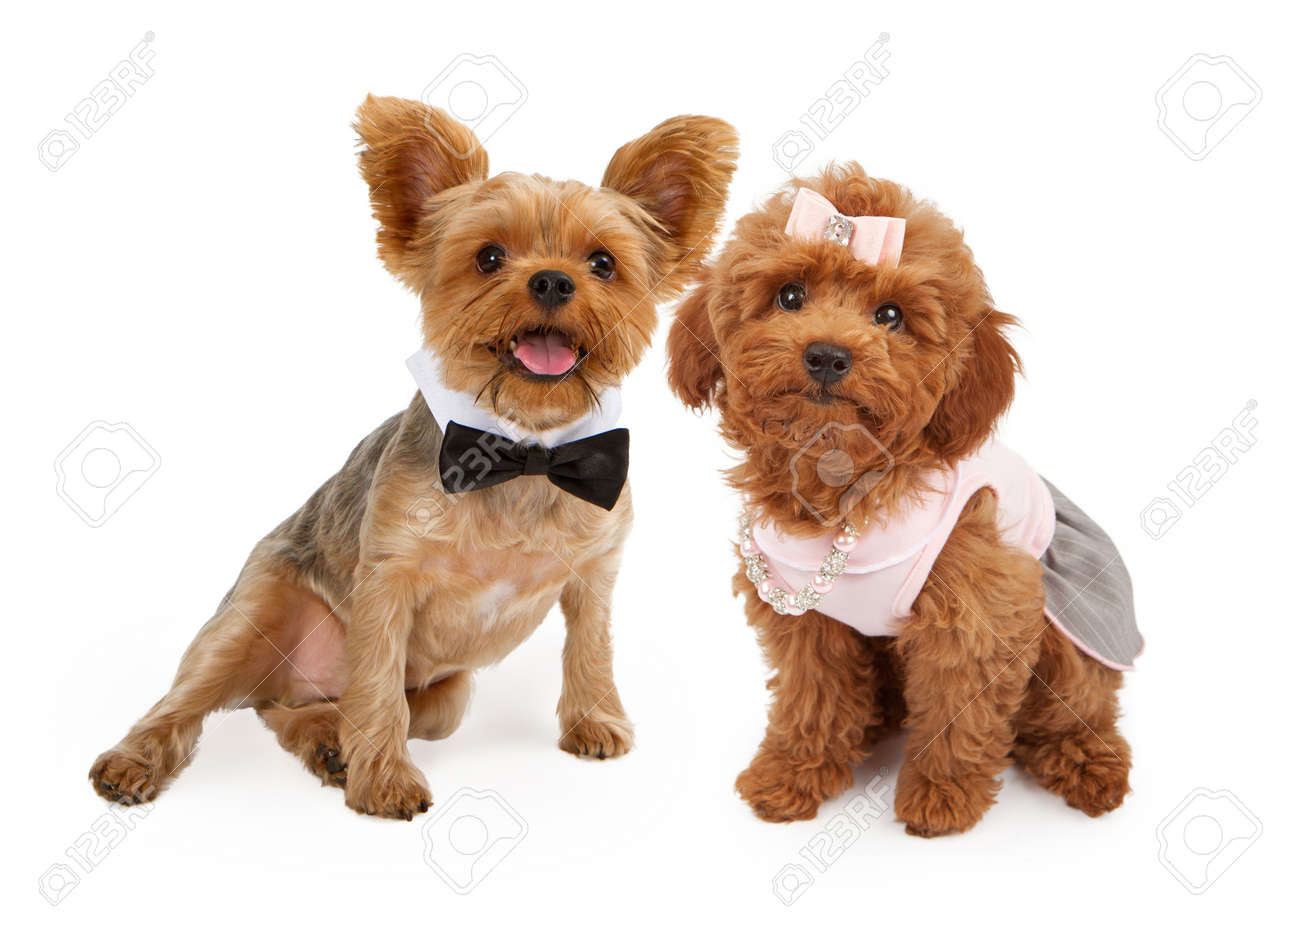 Top Puppies Bow Adorable Dog - 22890236-a-cute-young-red-poodle-puppy-wearing-a-pink-dress-hair-bow-and-pearl-and-rhinestone-necklace-and-an  Snapshot_166640  .jpg